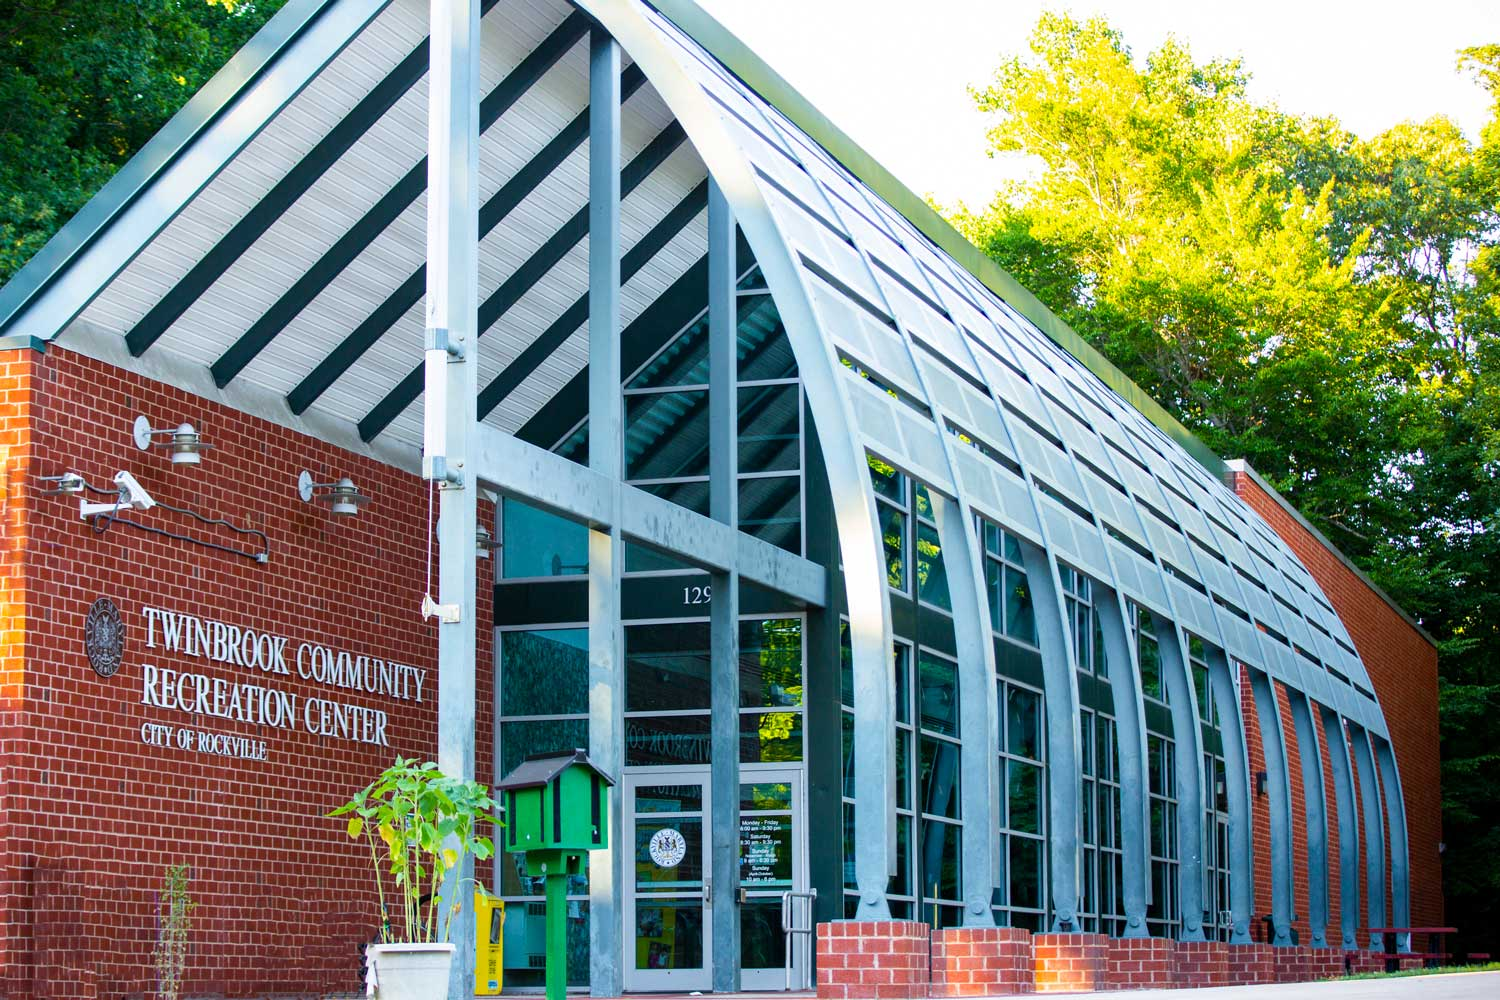 5 minutes to Twinbrook Community Recreational Center